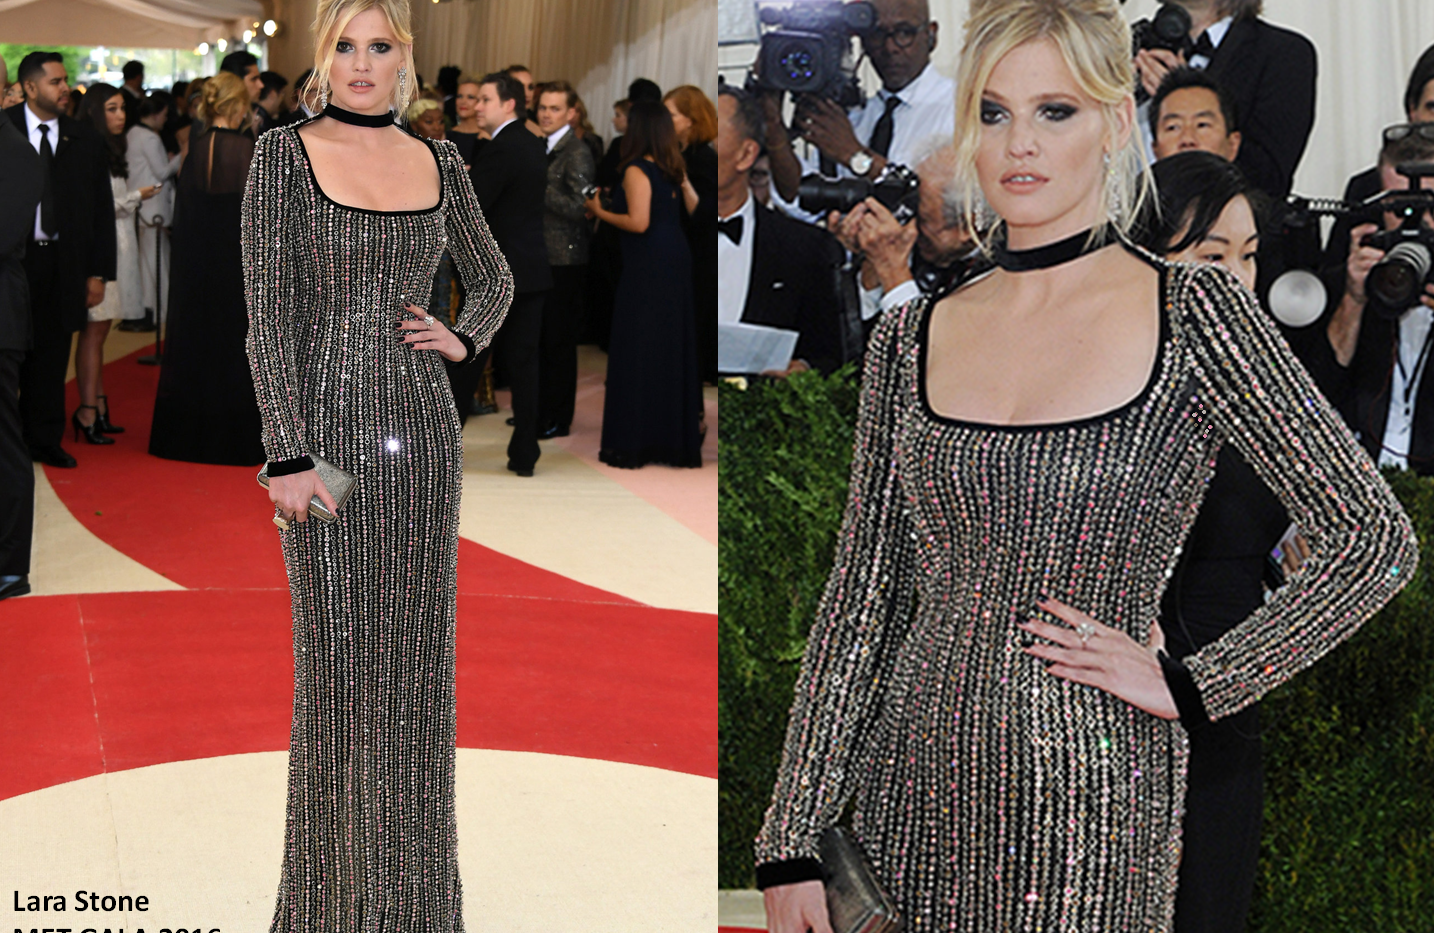 Lara Stone at the MET GALA 2016 wearing black crystals gown - Project for TOM FORD - dressmaking - fitting / tailoring - managing - garment technology consult